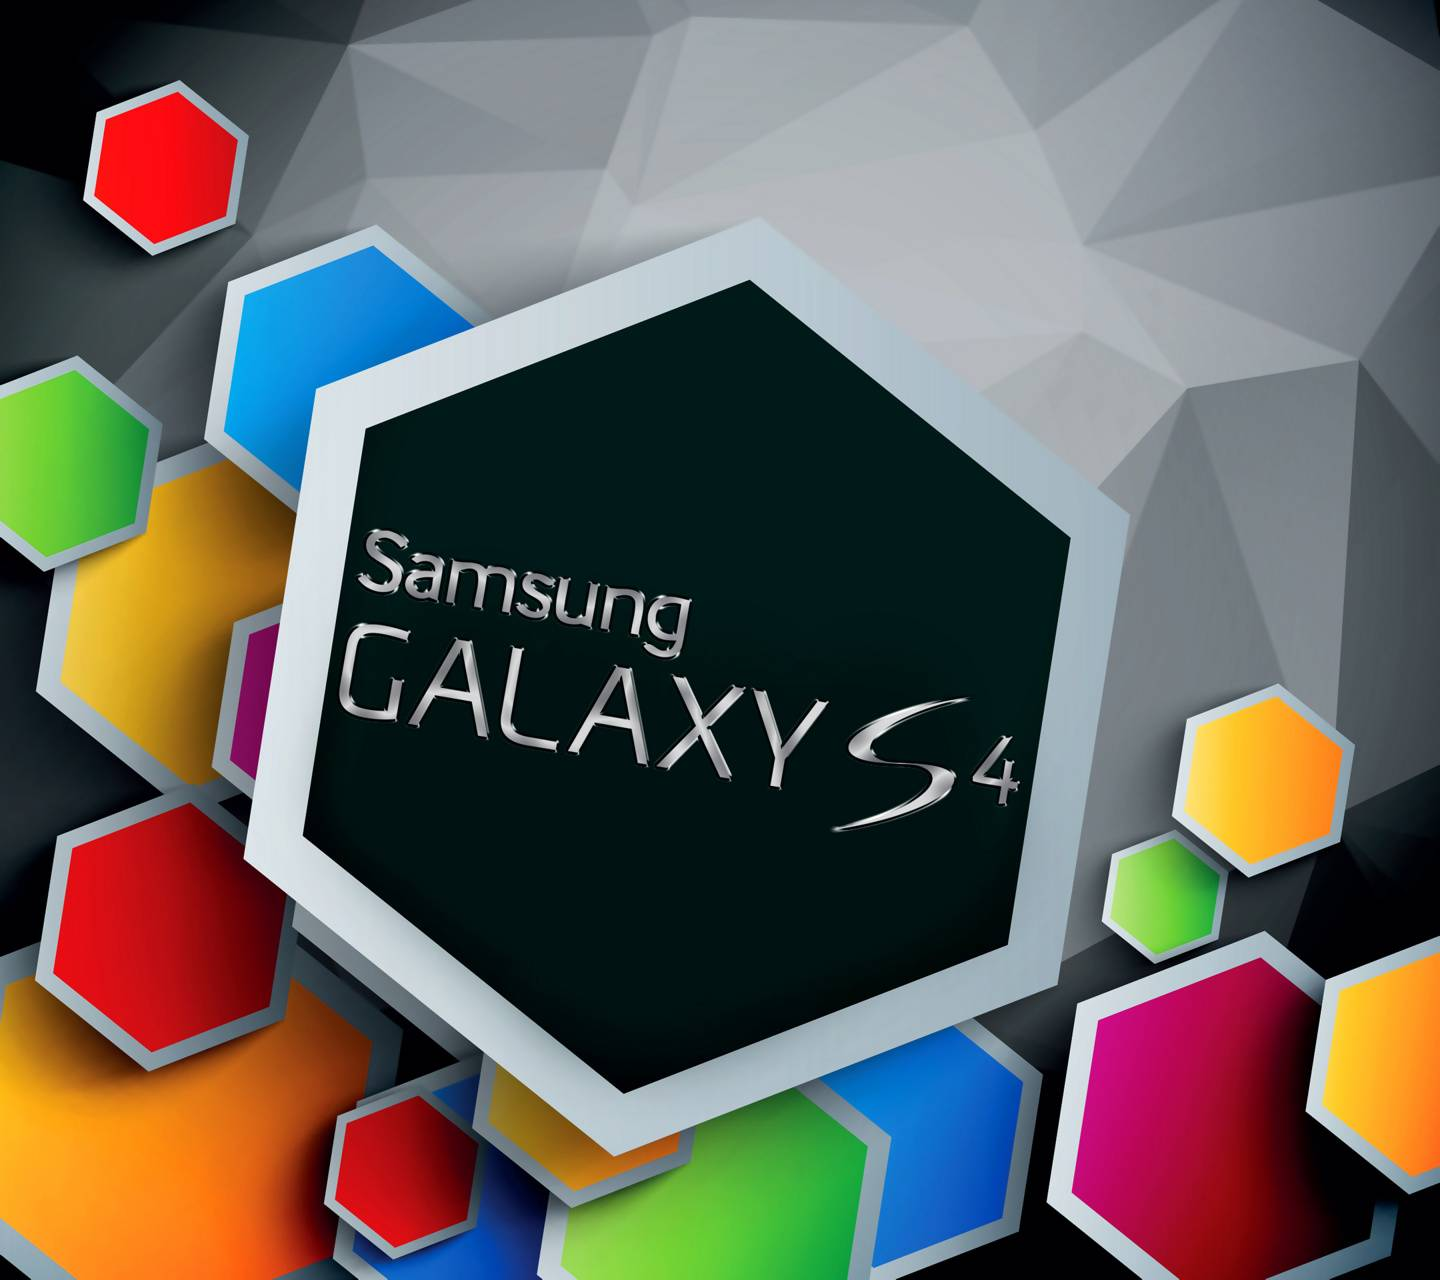 Colorful Galaxy S4